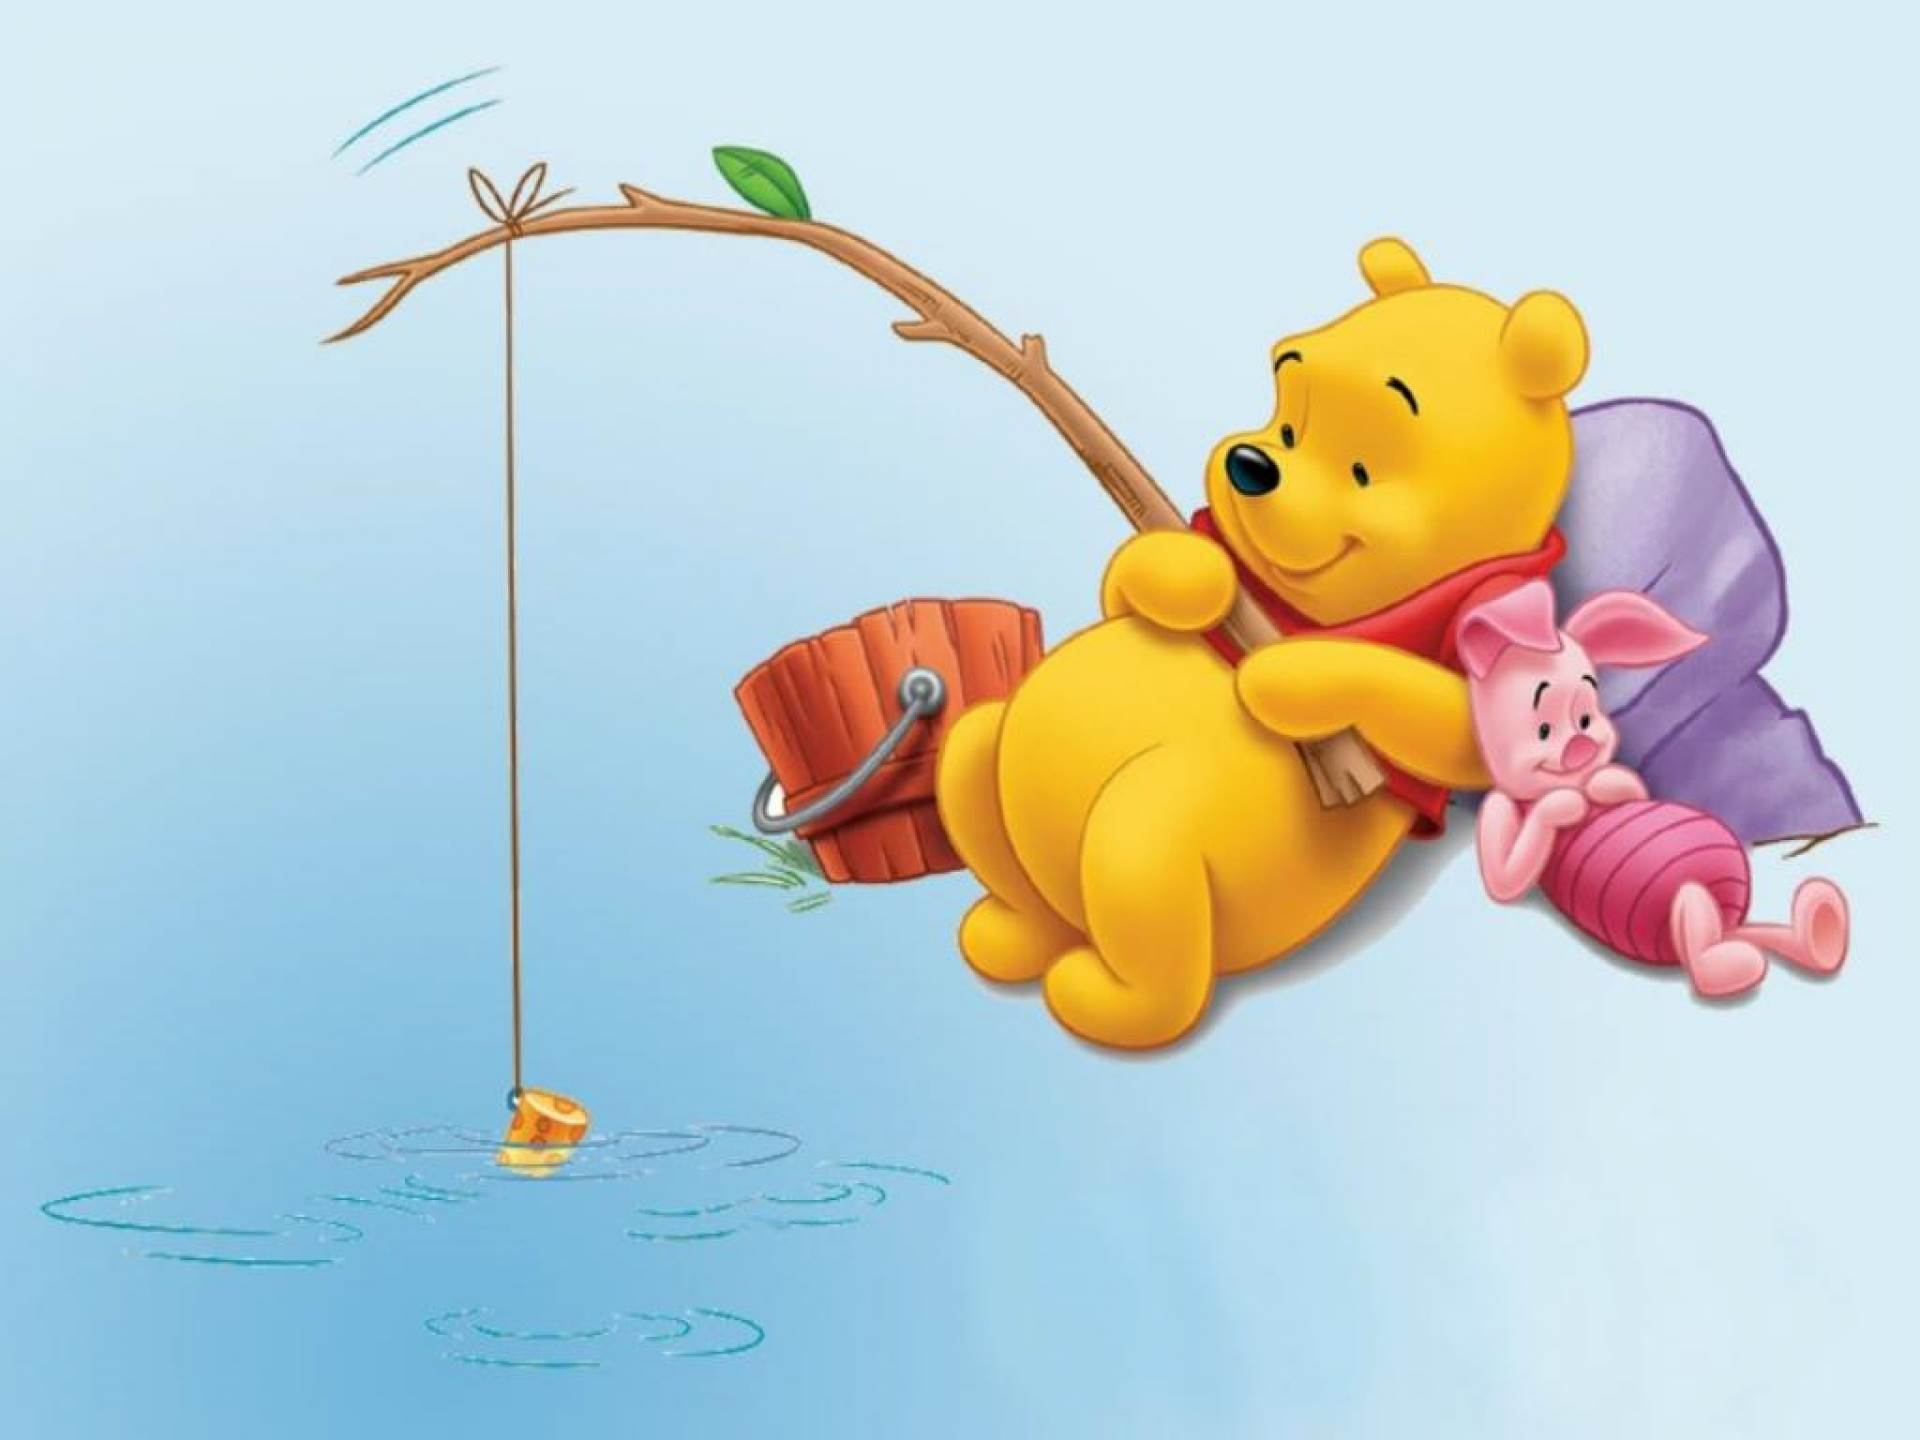 Winnie the Pooh Disney Full HD Wallpaper Image for Phone  - Cartoons Wallpapers